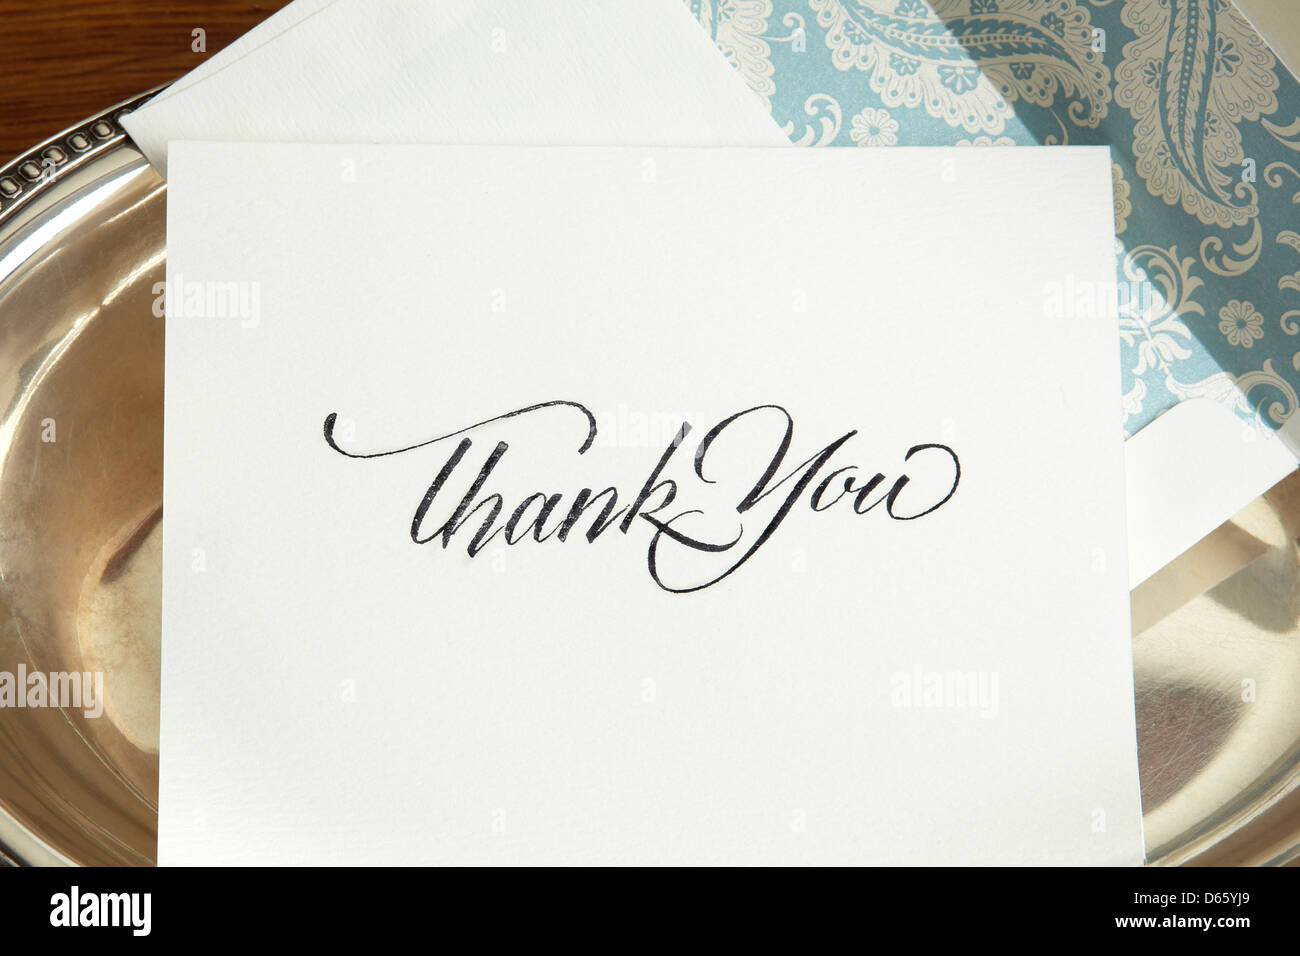 Thank you note on silver tray. - Stock Image